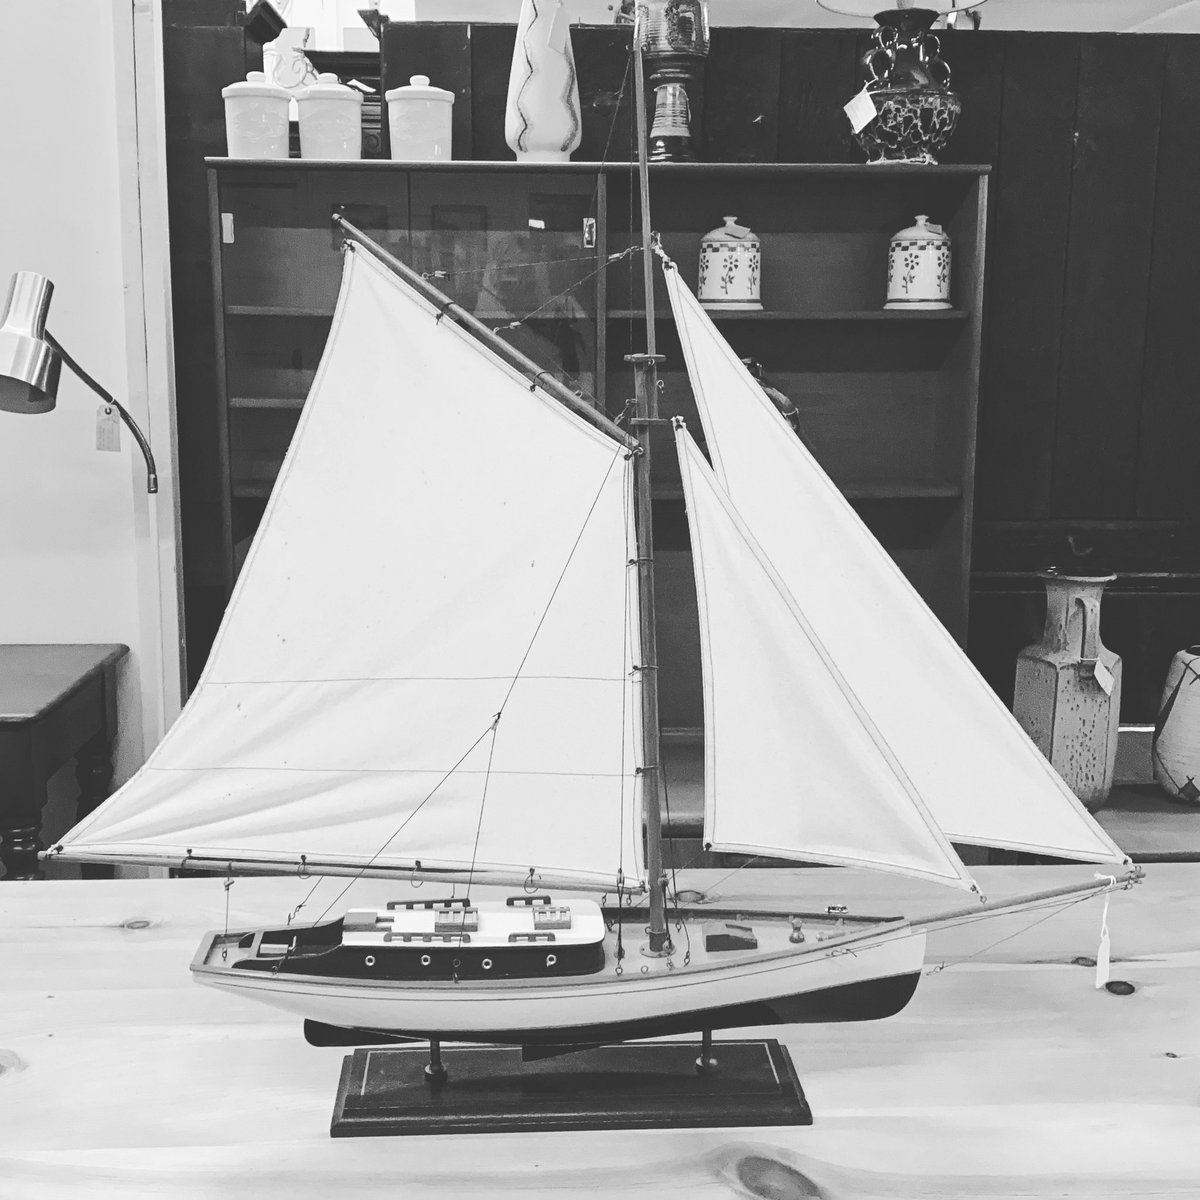 If your dreaming of sailing away then we might just have the thing! Open 10-5 #sailing #sailaway #decorative #model #astraantiquescentre #hemswell #lincolnshire https://t.co/KOYBpVZIq3